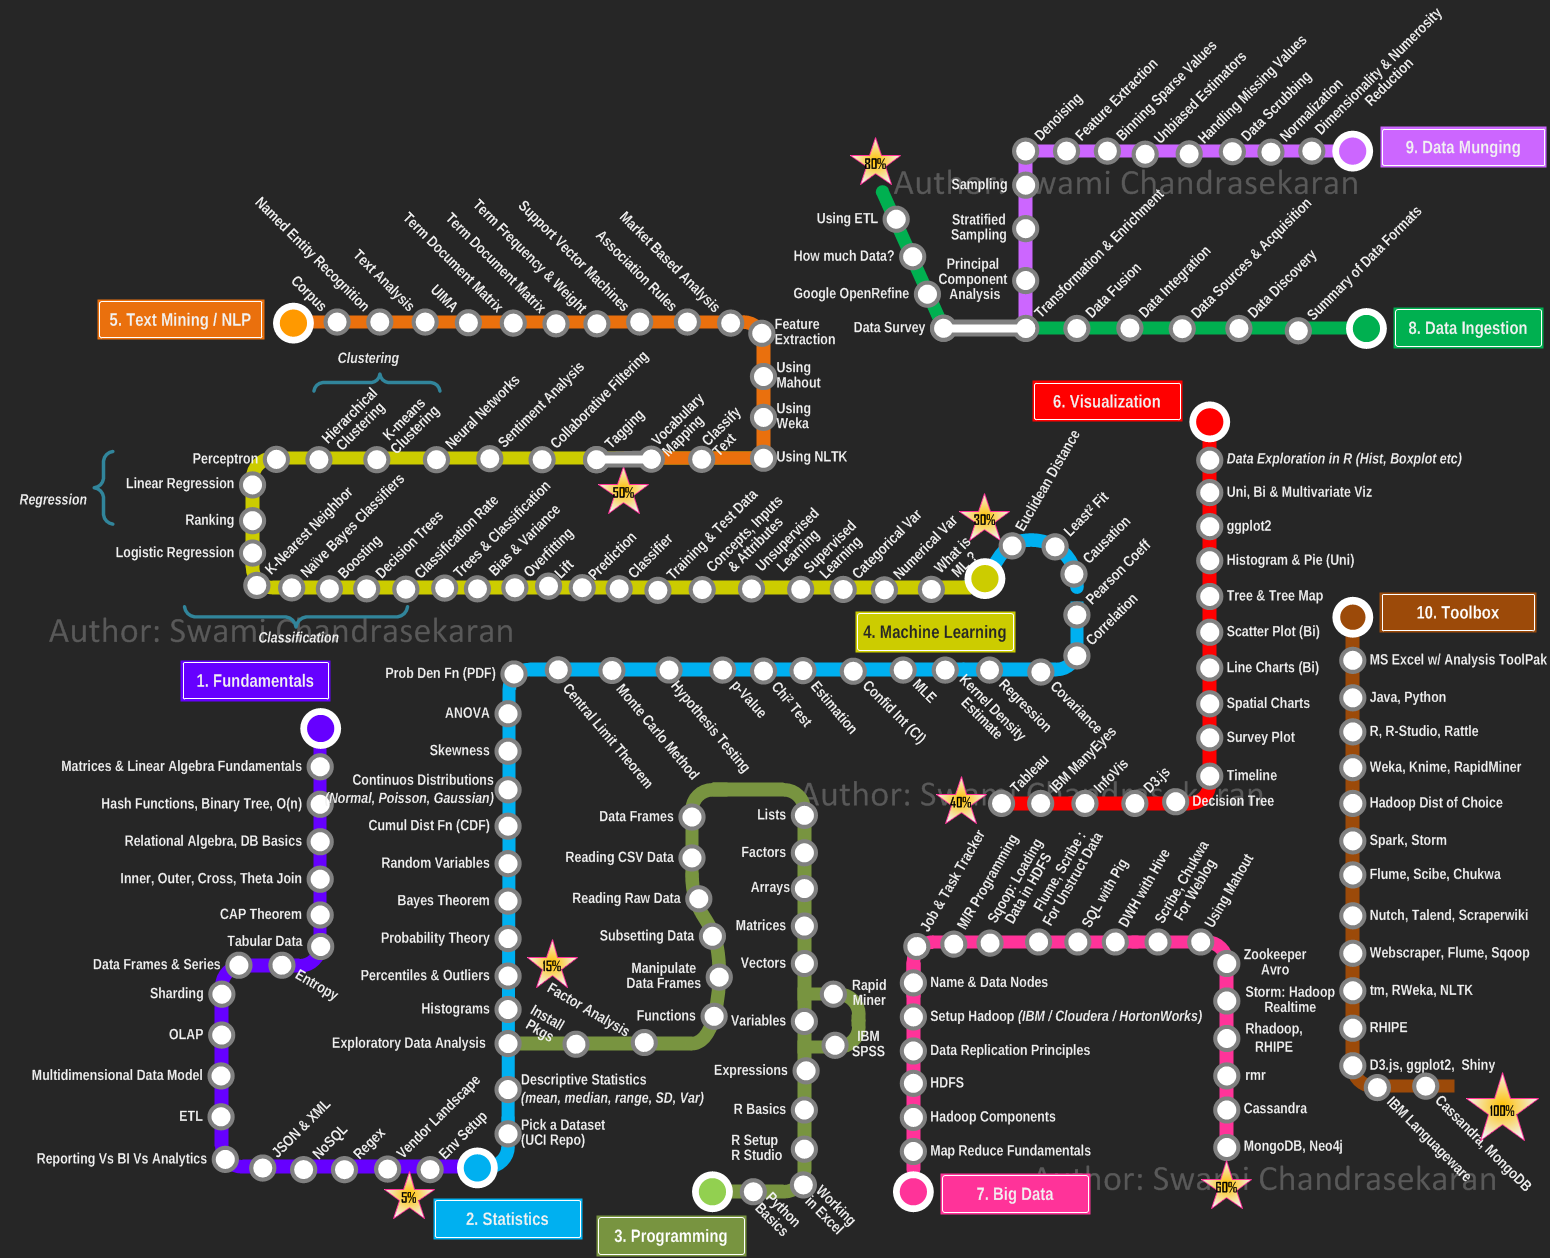 Technology Roadmap Subway Map.Becoming A Data Scientist Curriculum Via Metromap Pragmatic